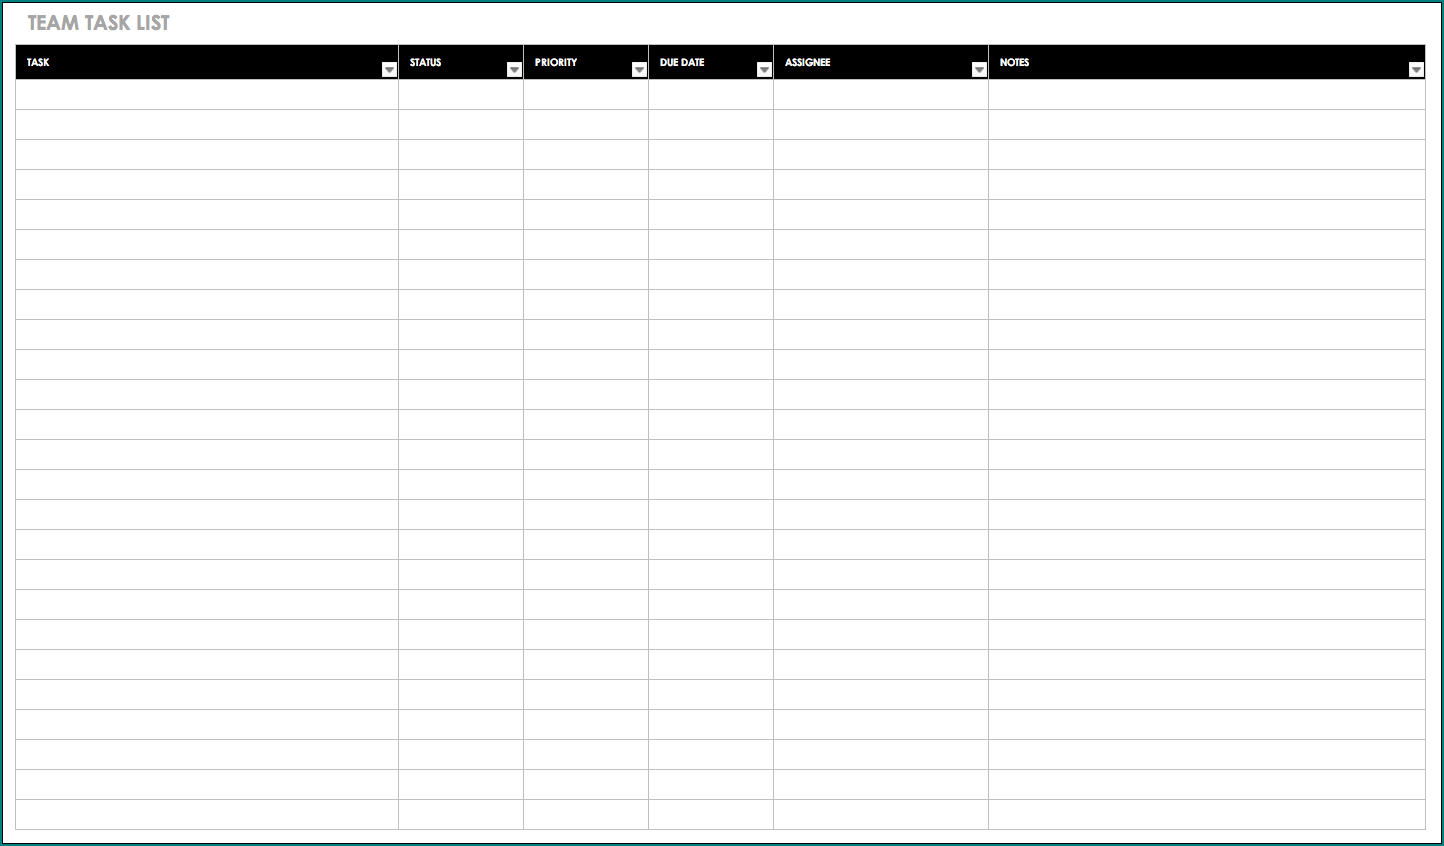 Weekly Task List Template Excel from www.bogiolo.com